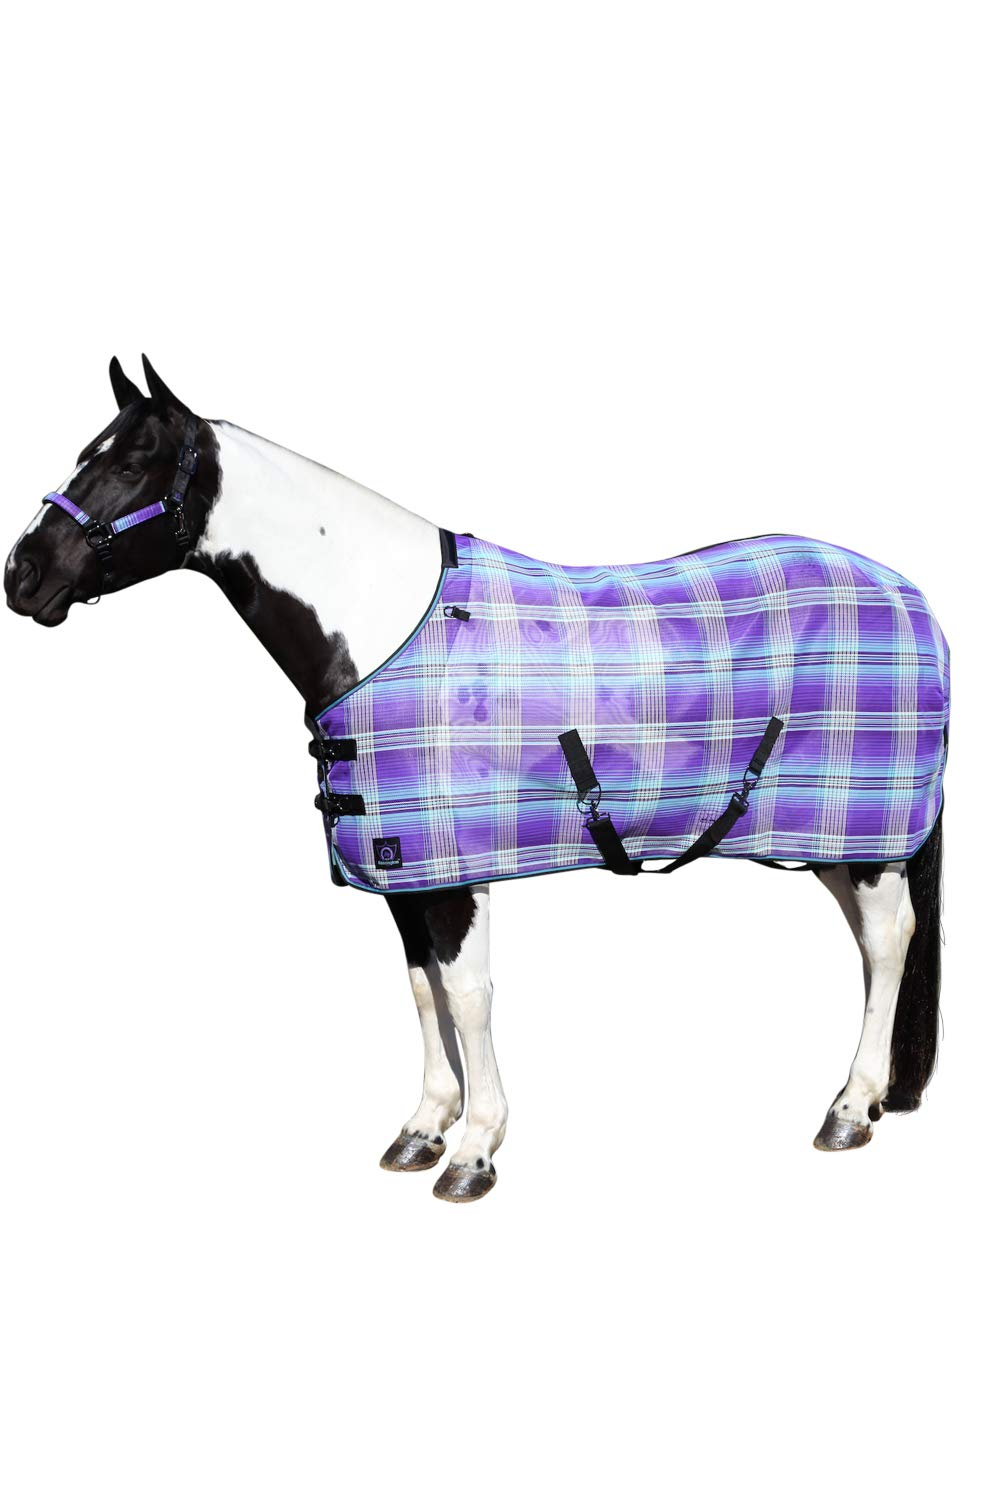 Kensington Platinum SureFit Protective Fly Sheet for Horses - SureFit Cut with Snap Front Chest Closure - Made of Grooming Mesh This Sheet Offers Maximum Protection Year Round - 75'' Lavender Mint by Kensington Protective Products (Image #1)